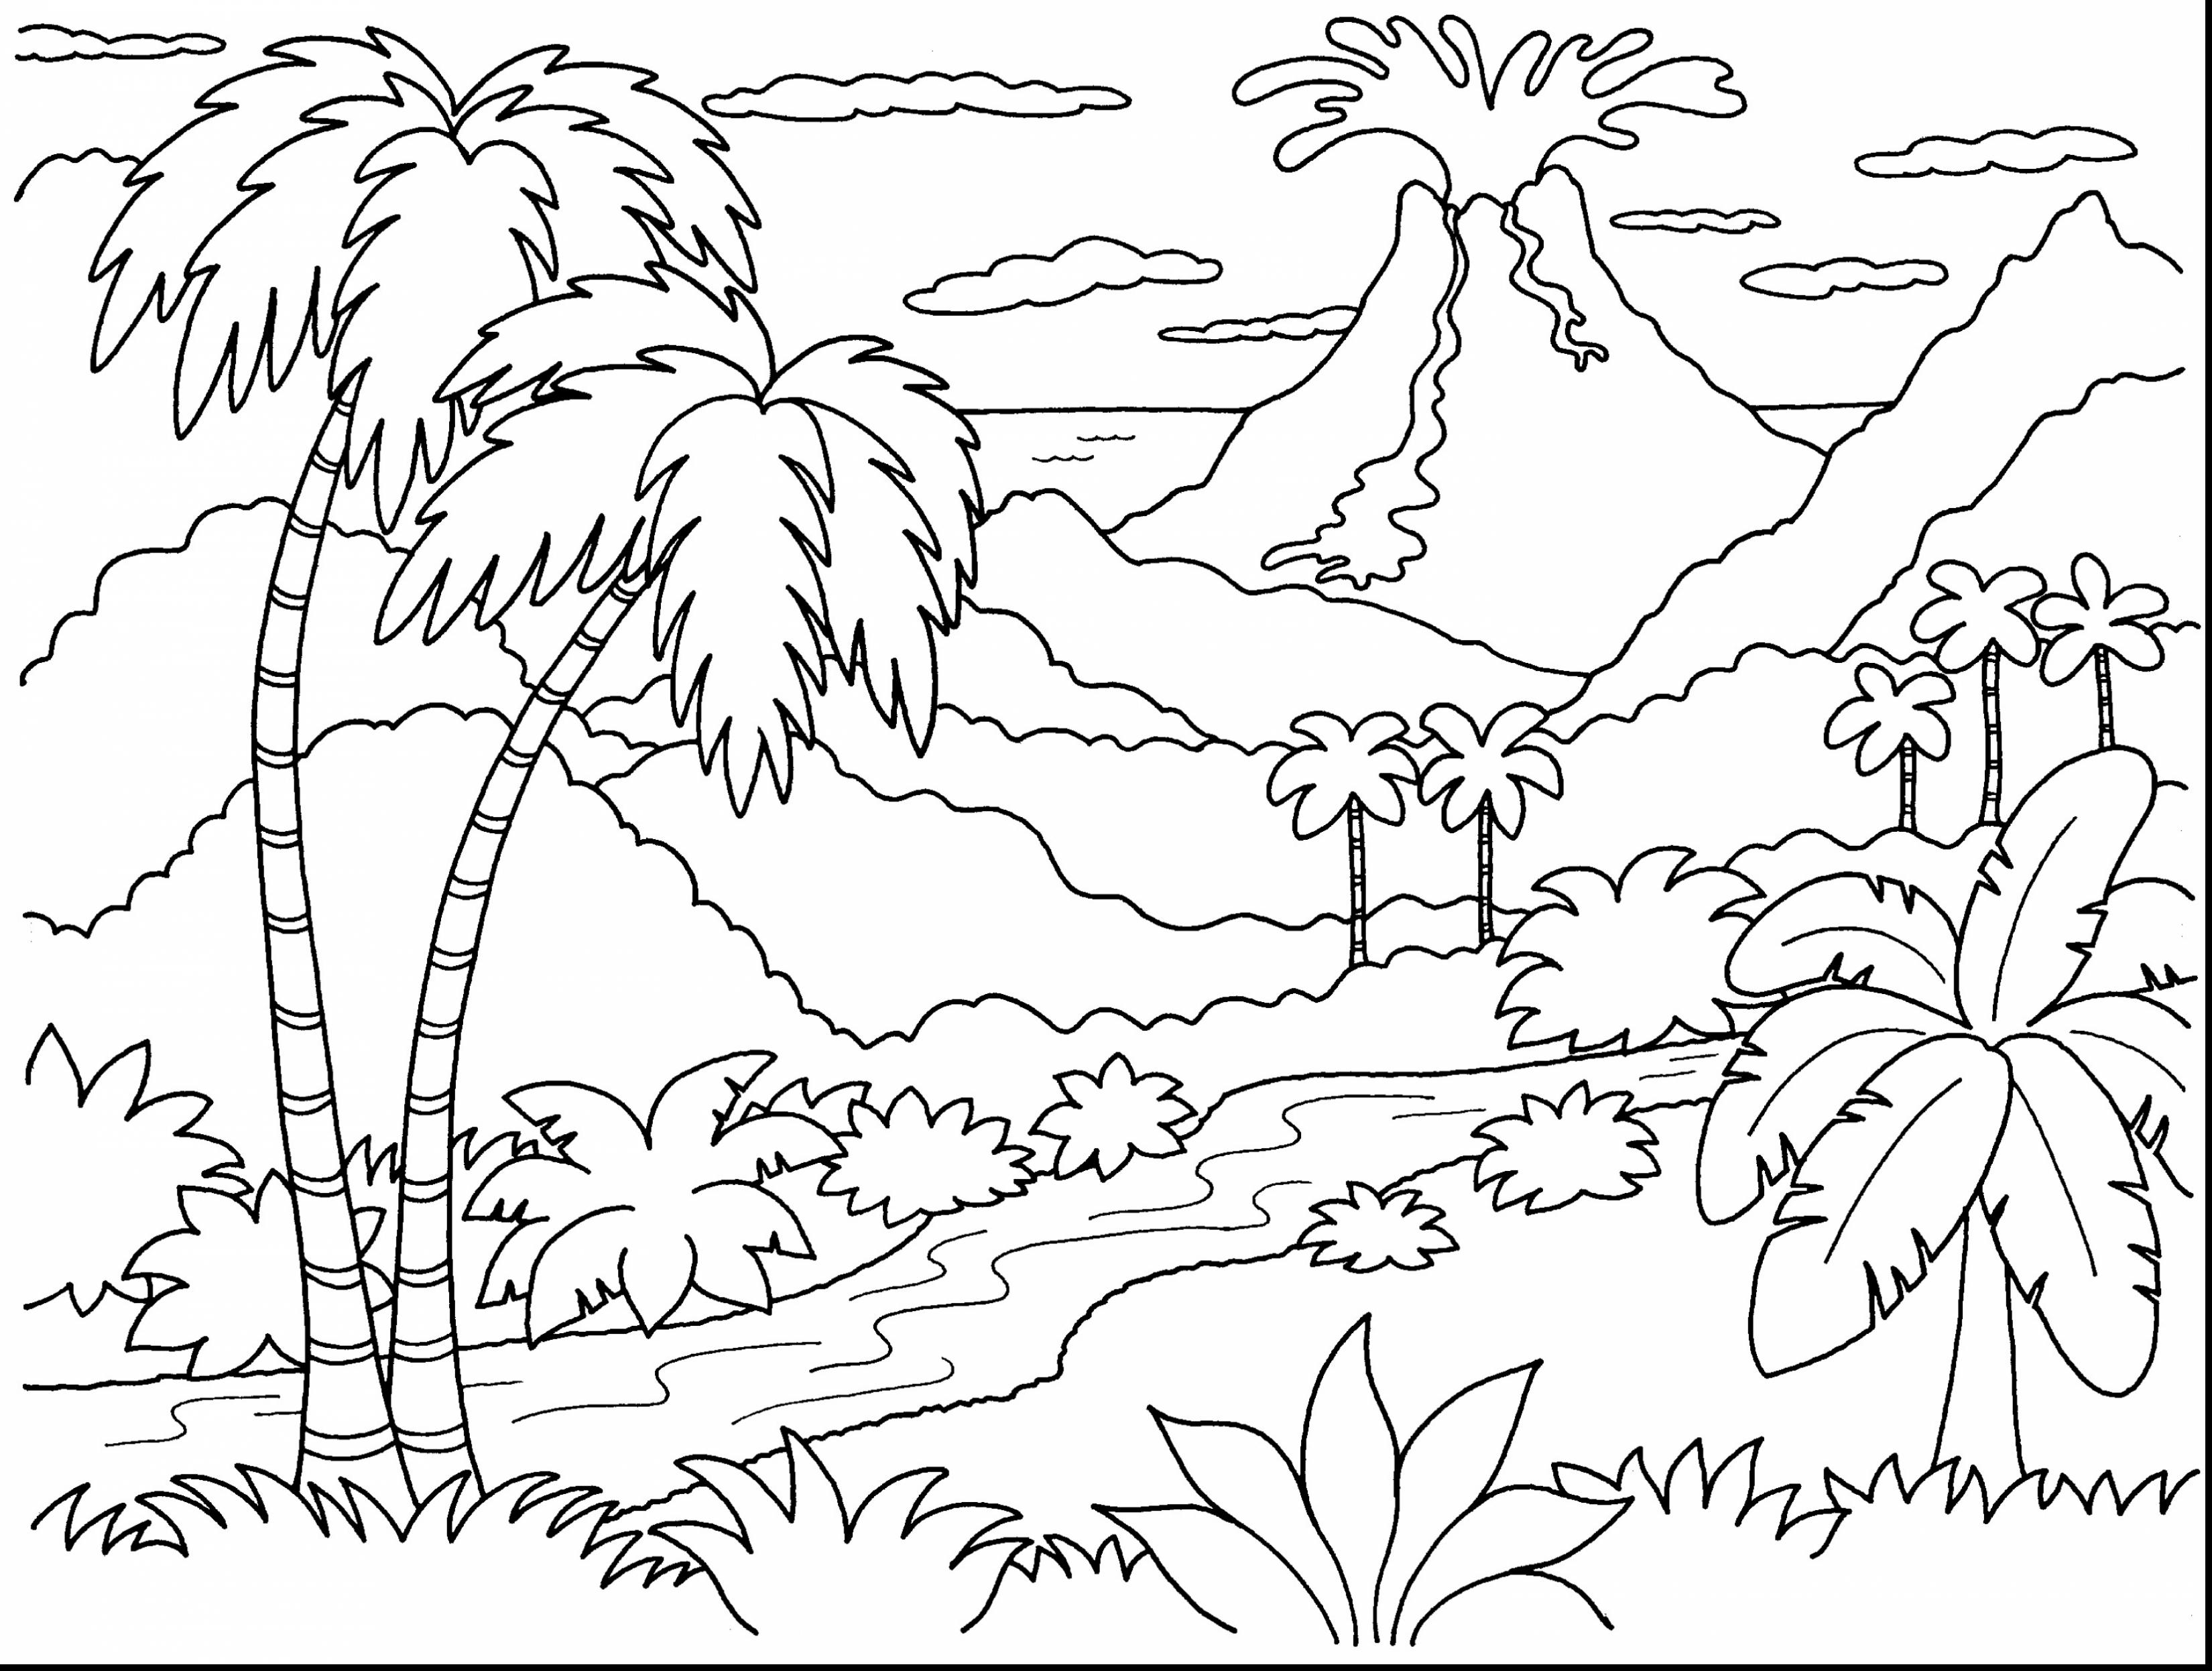 Island Volcano Eruption coloring #16, Download drawings